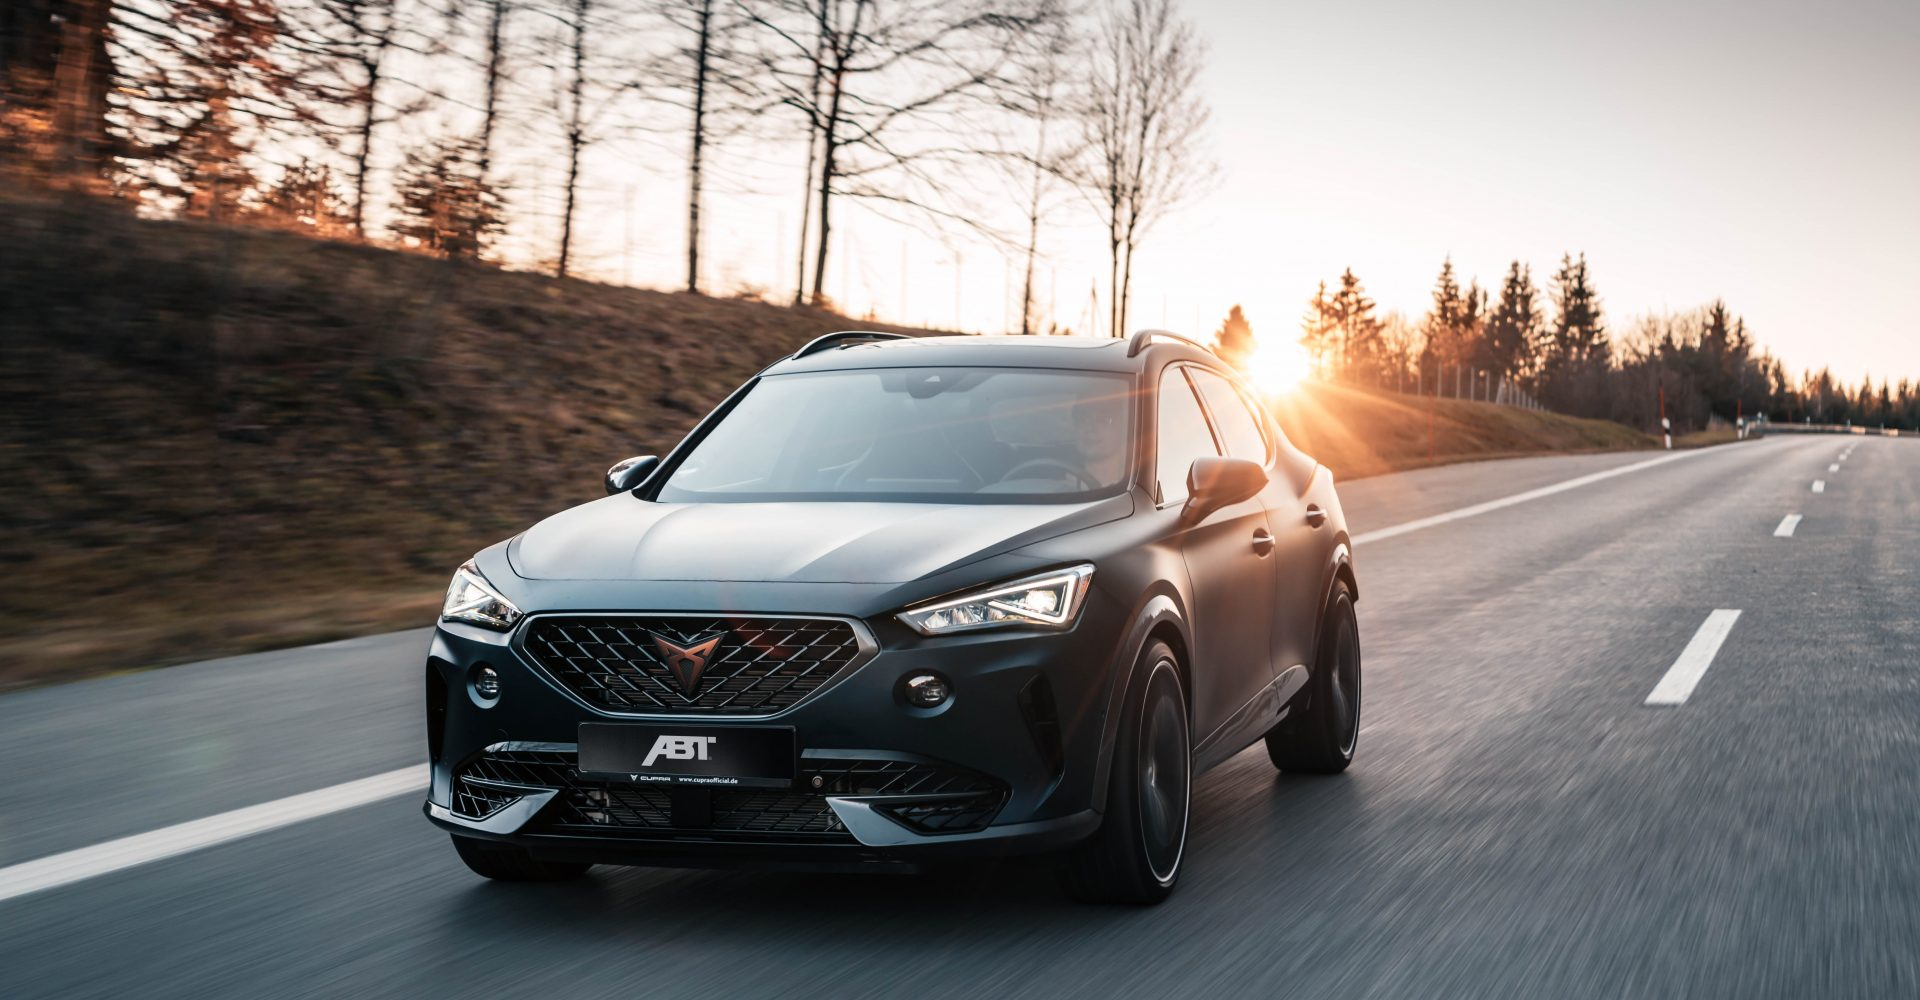 ABT gives Cupra's Formentor a performance and visual boost